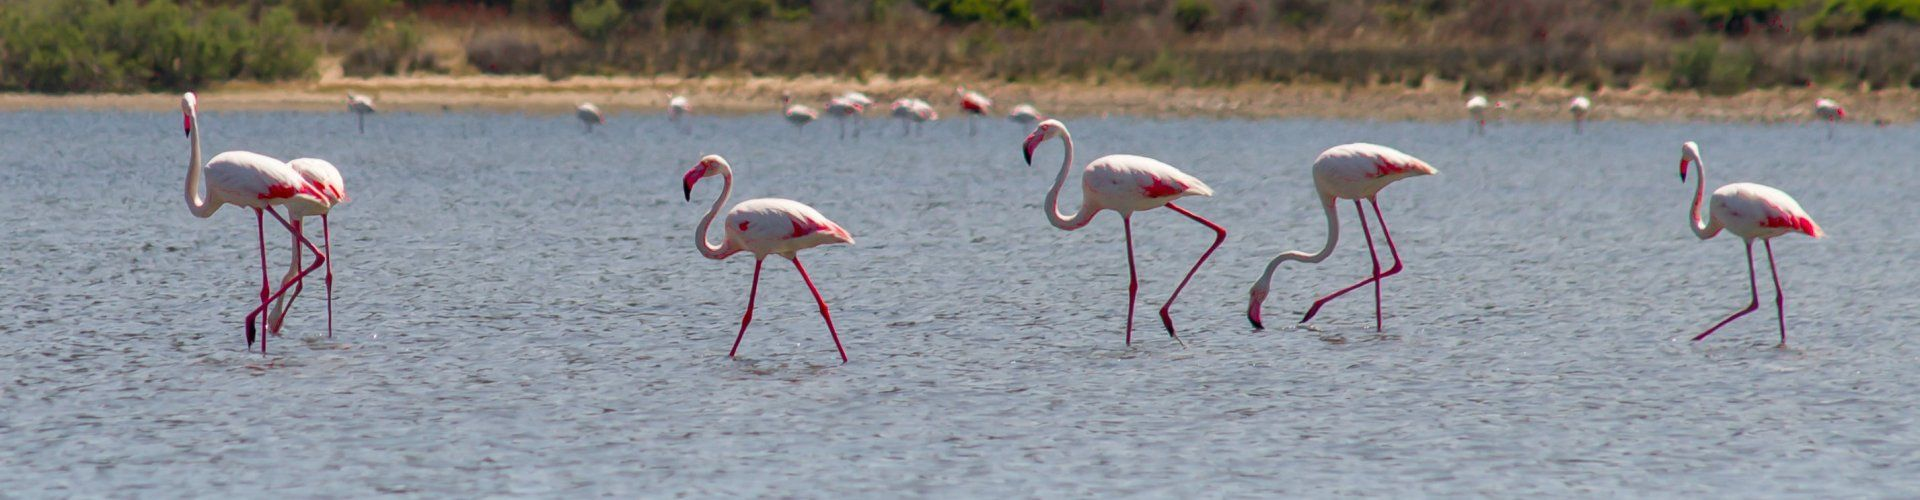 Flamingos wade the lagoon of Torresalinas